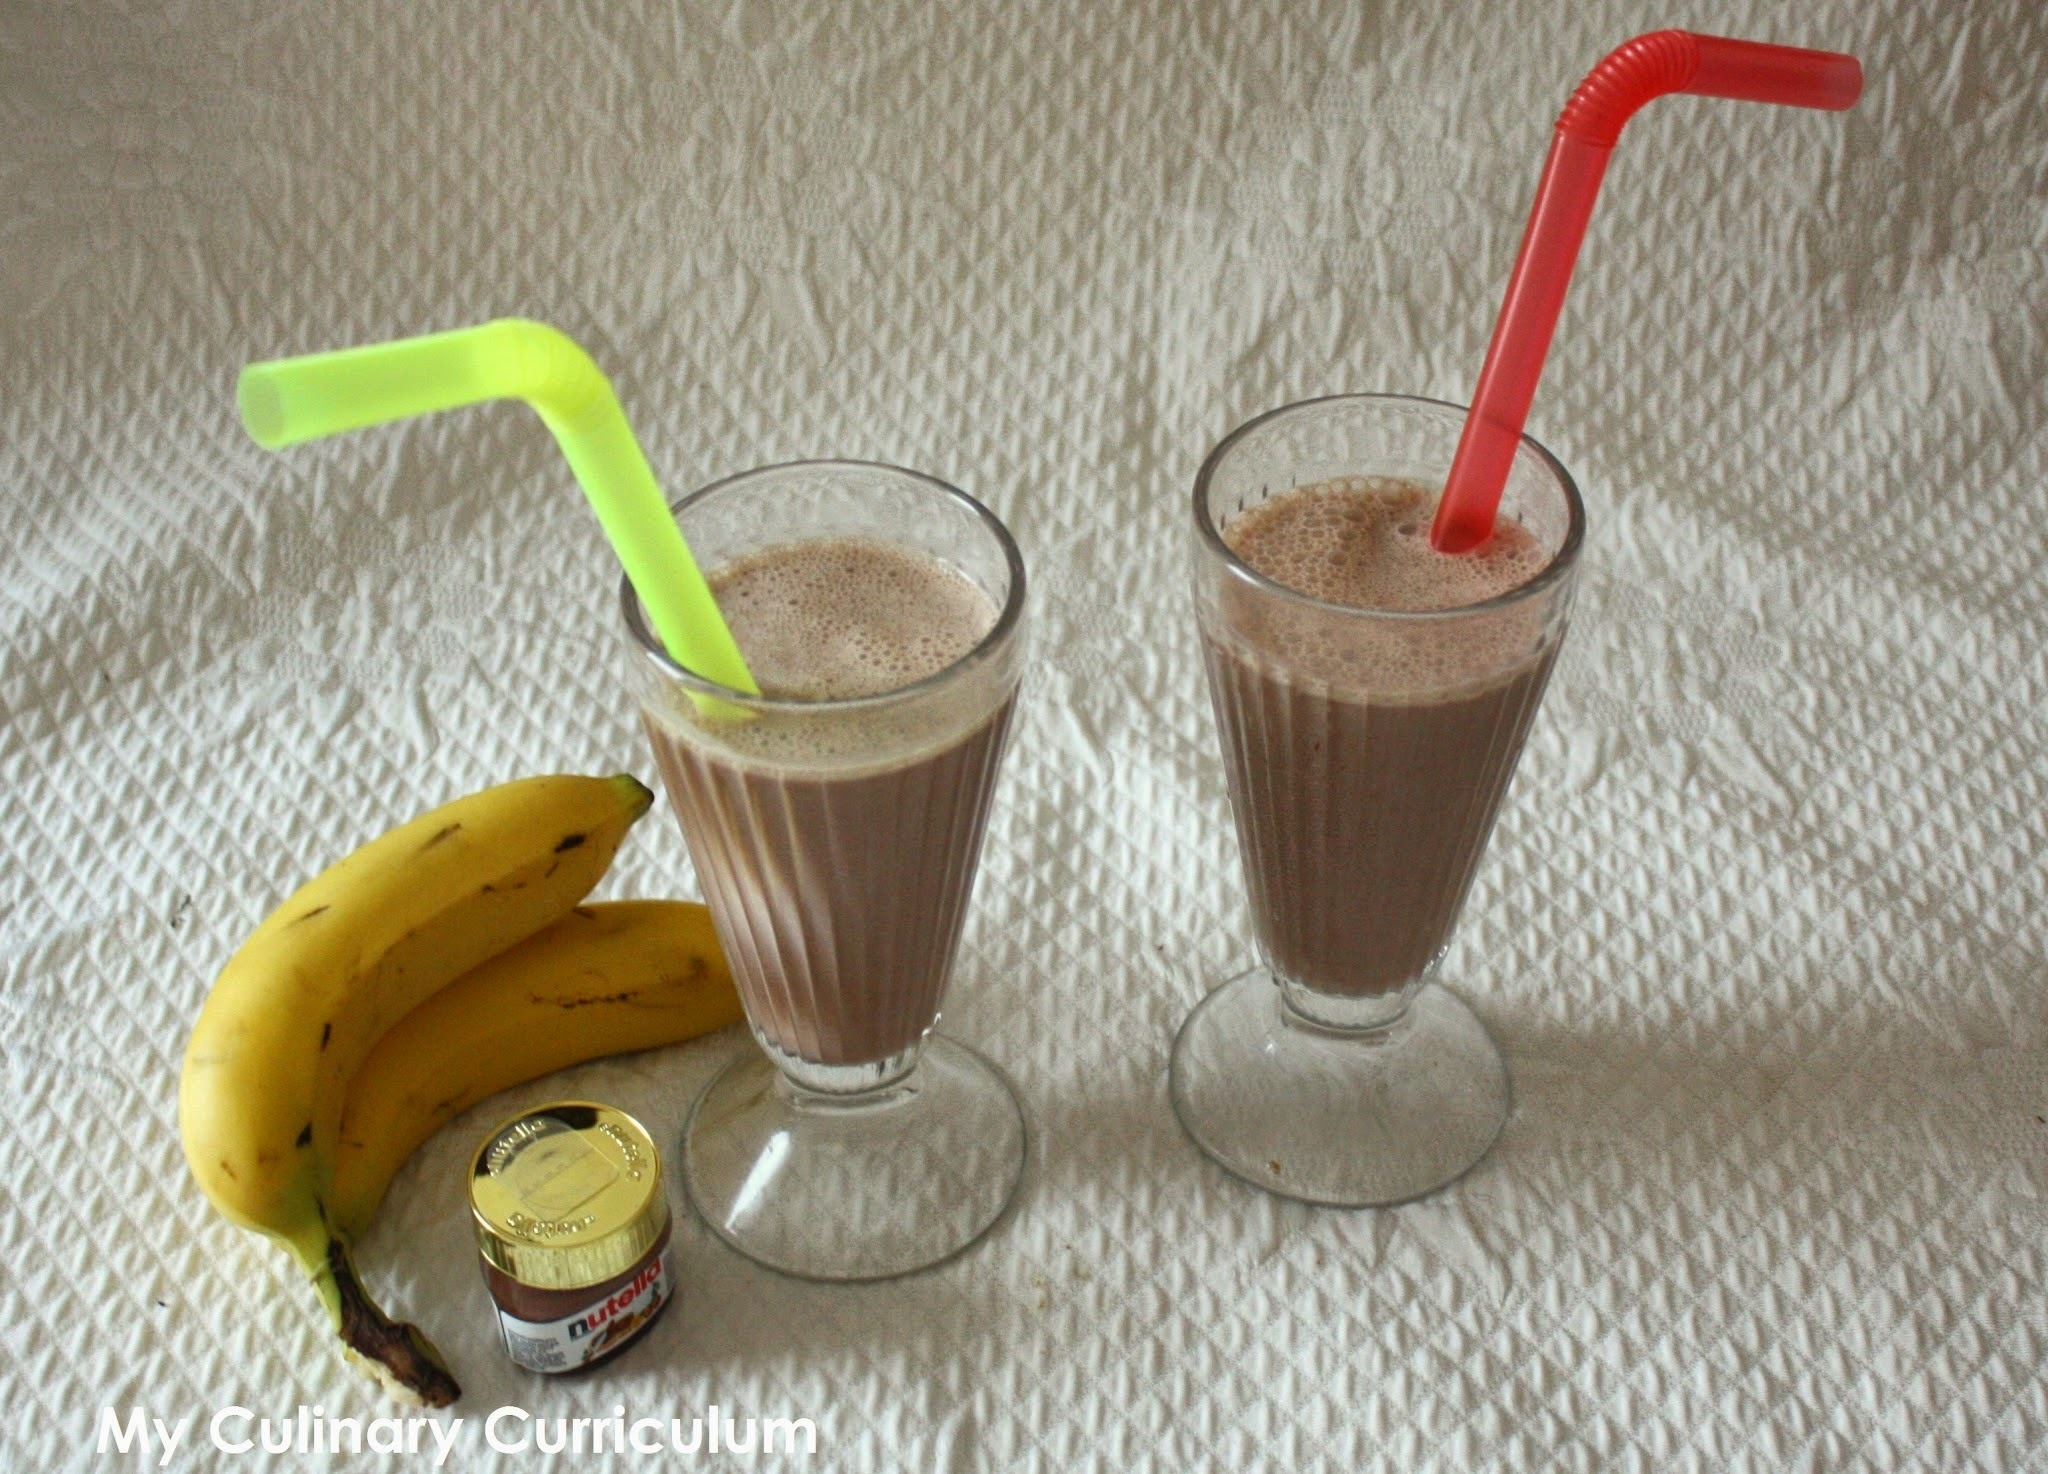 Milkshake banane Nutella (Nutella and banana milkshake)